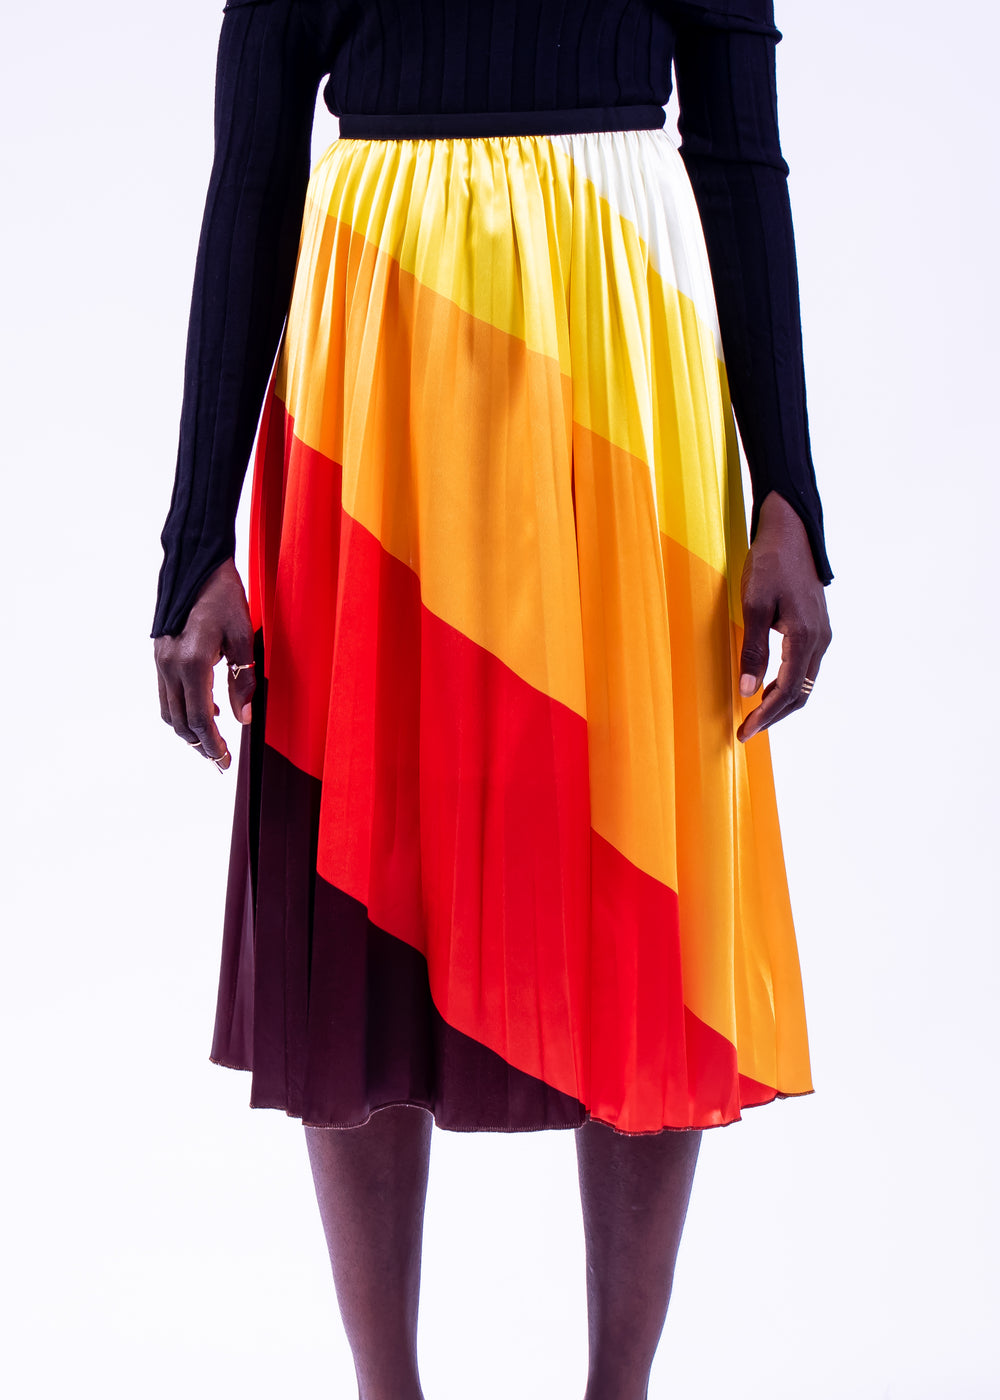 4shades Yoke Skirt